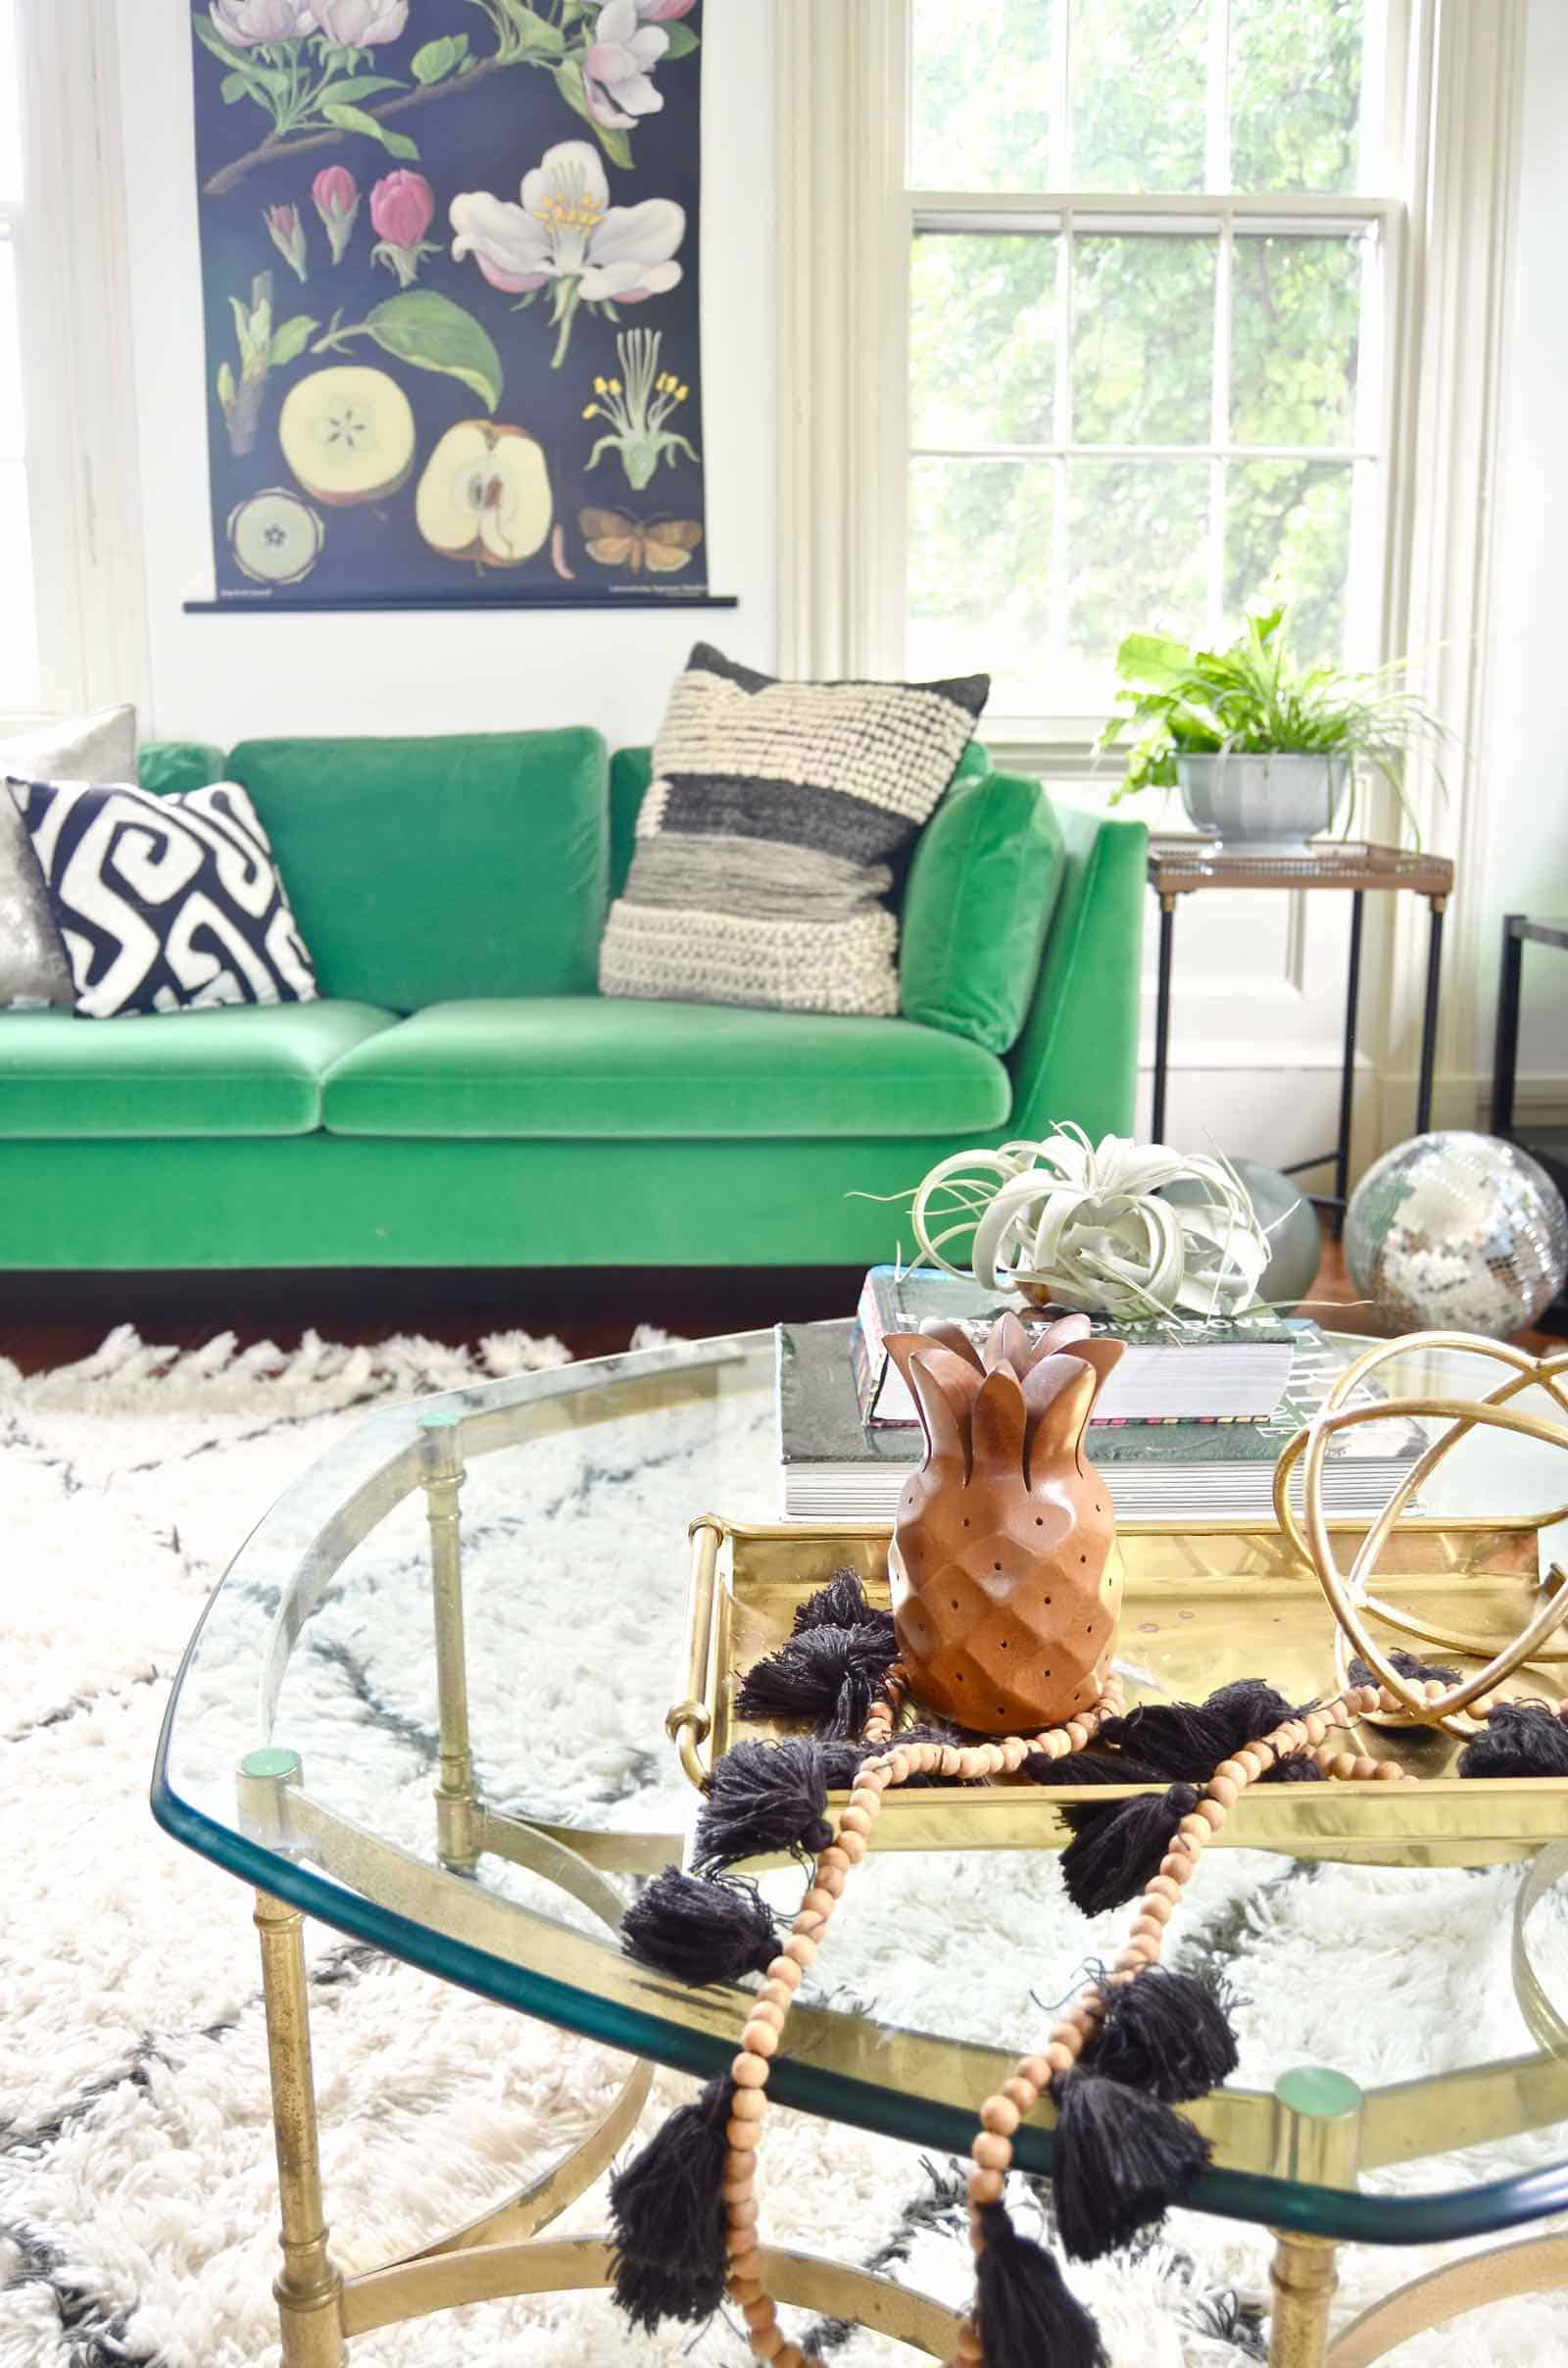 transitional decor from summer to fall